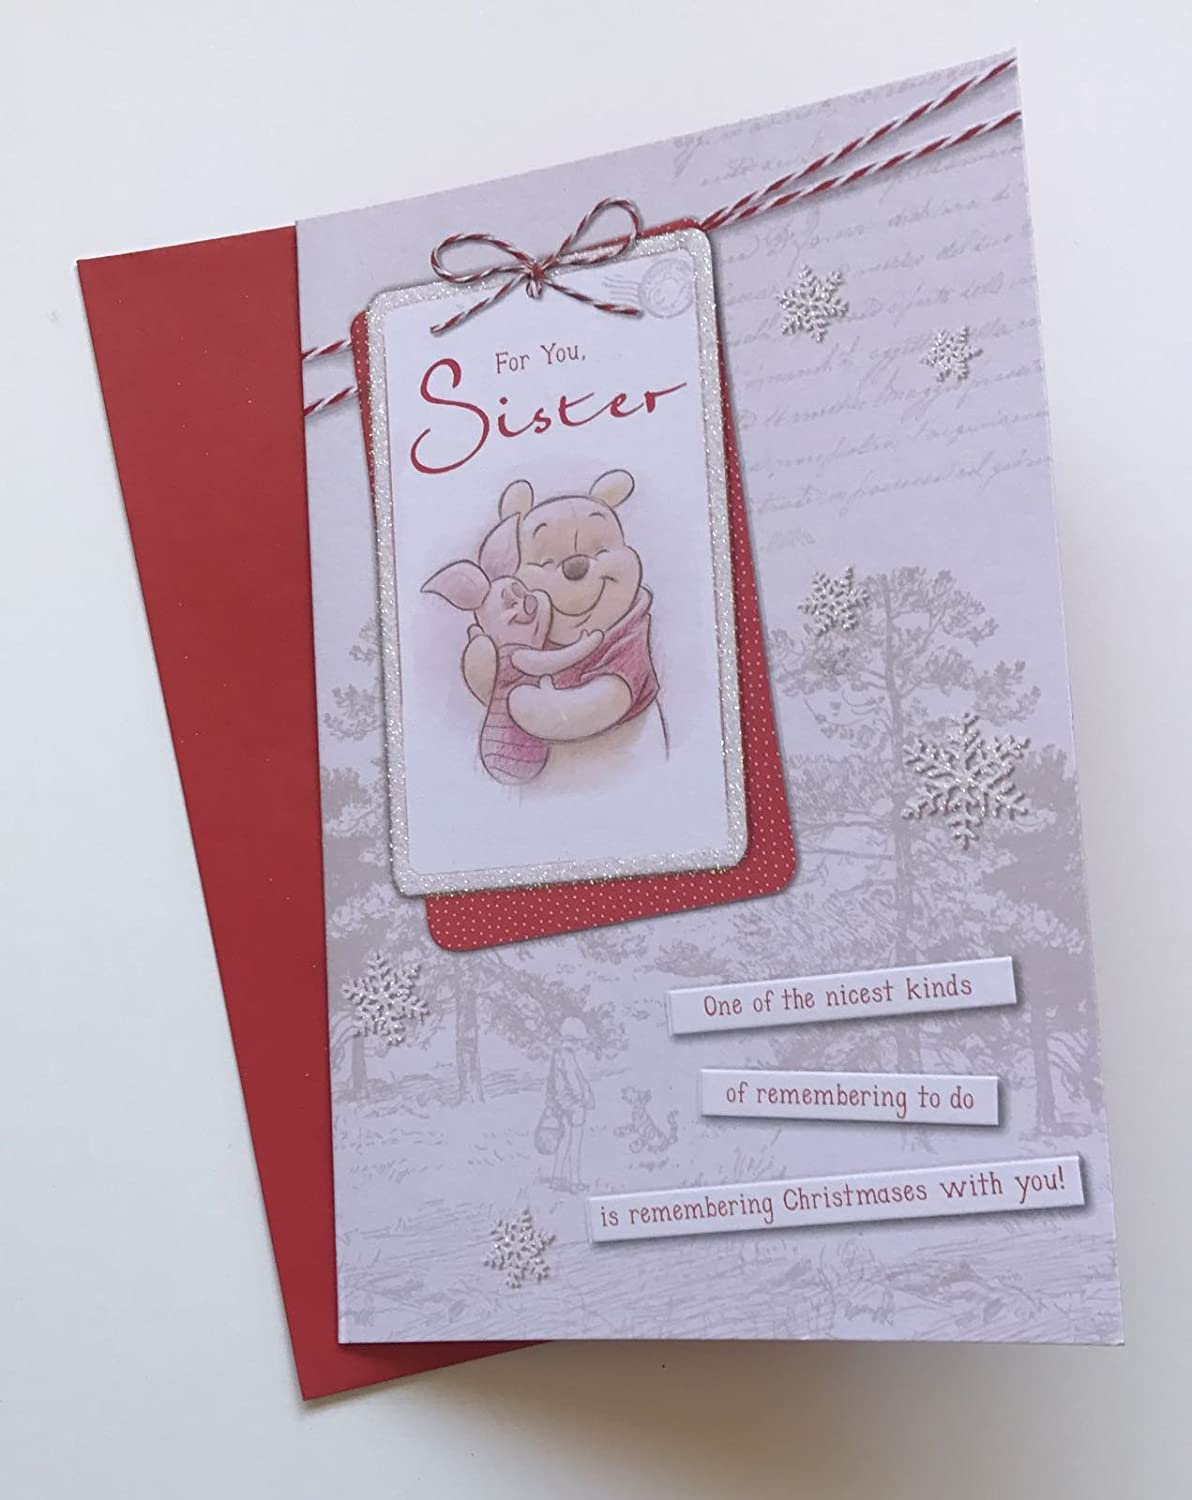 Winnie the pooh for you sister Christmas card Unique Christmas Gifts